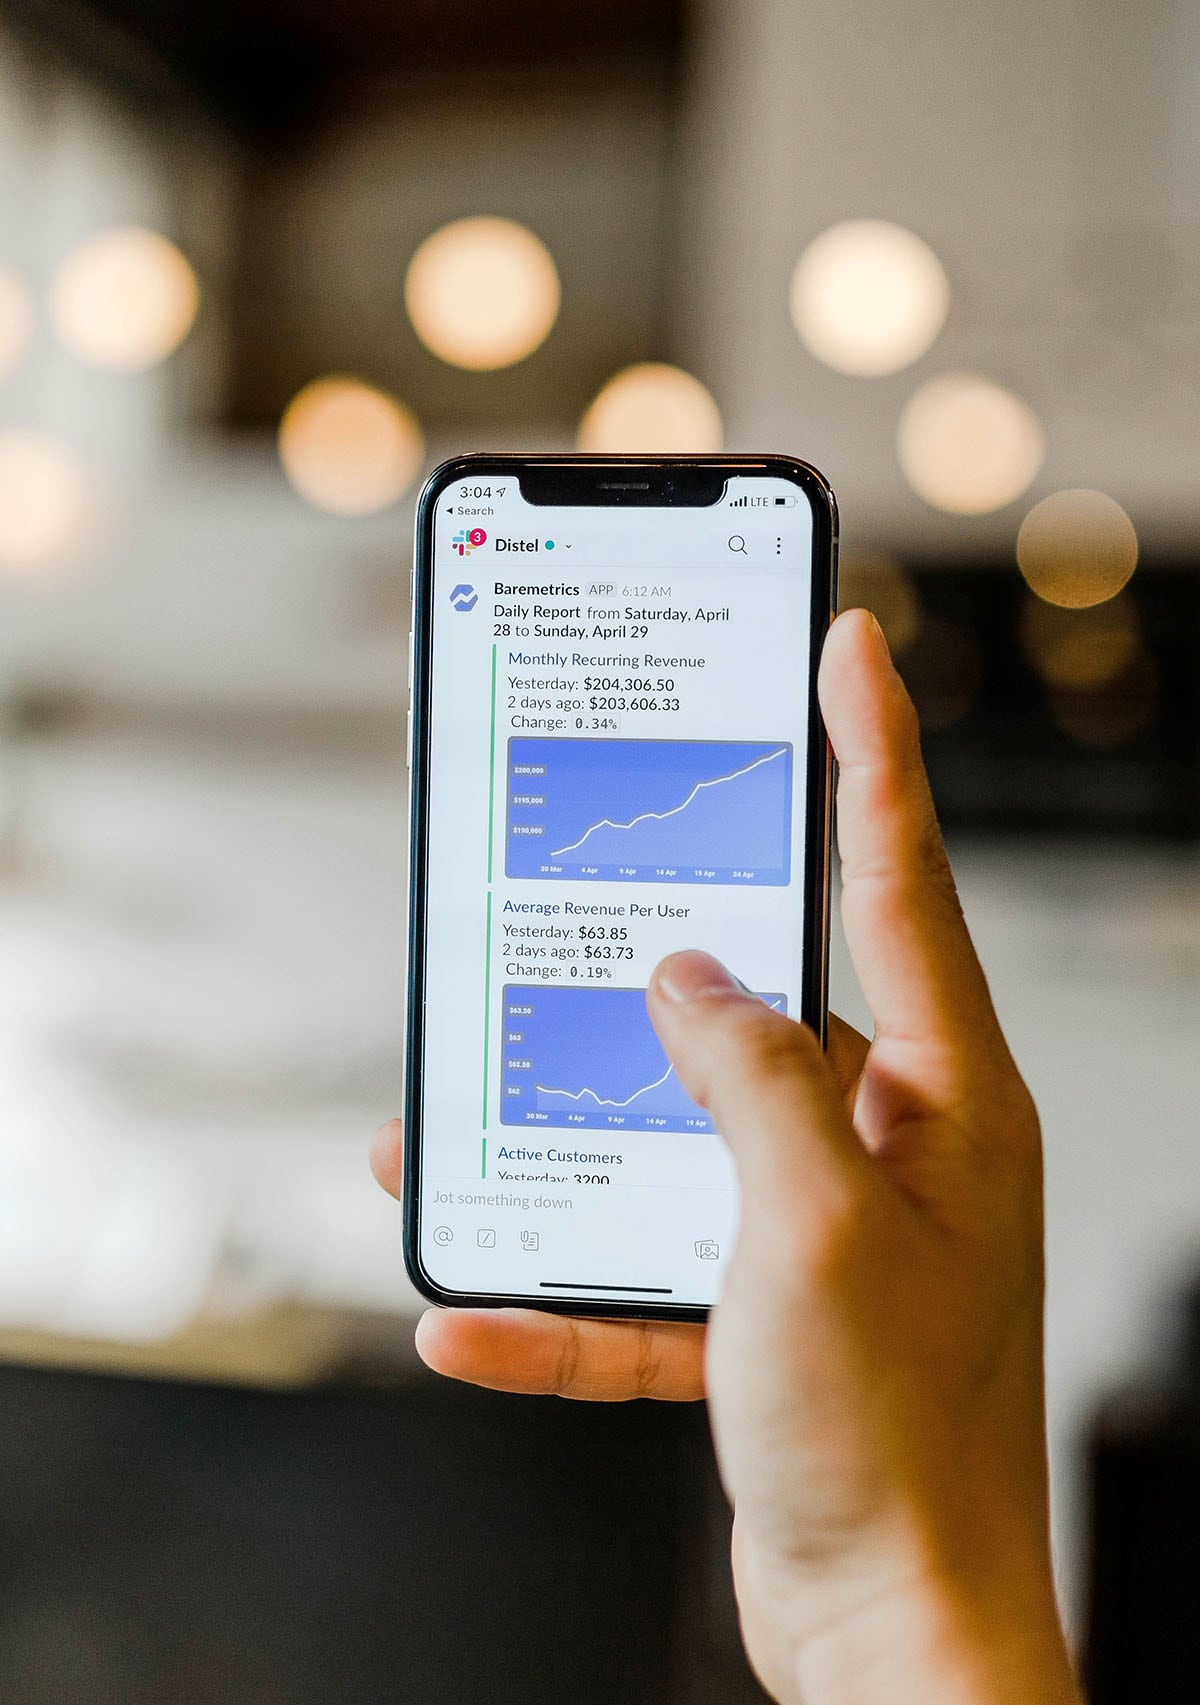 austin-distel-fEedoypsW_U-unsplash